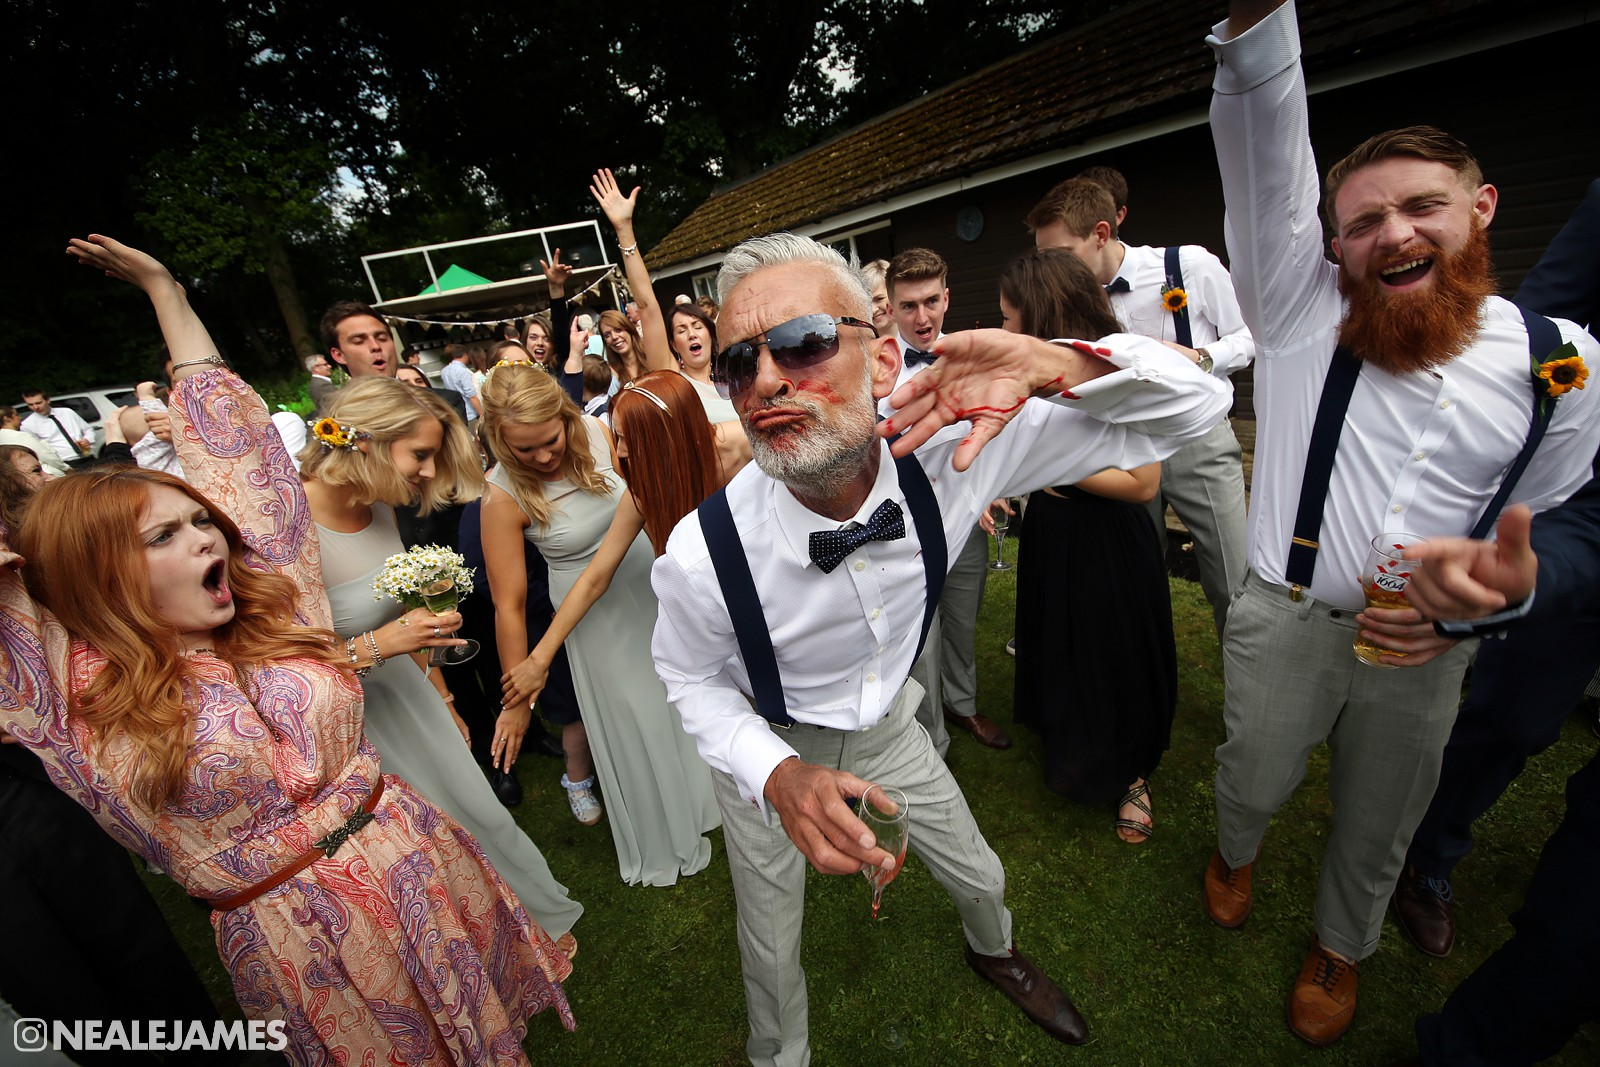 A father of the groom in this colour picture partying with guests